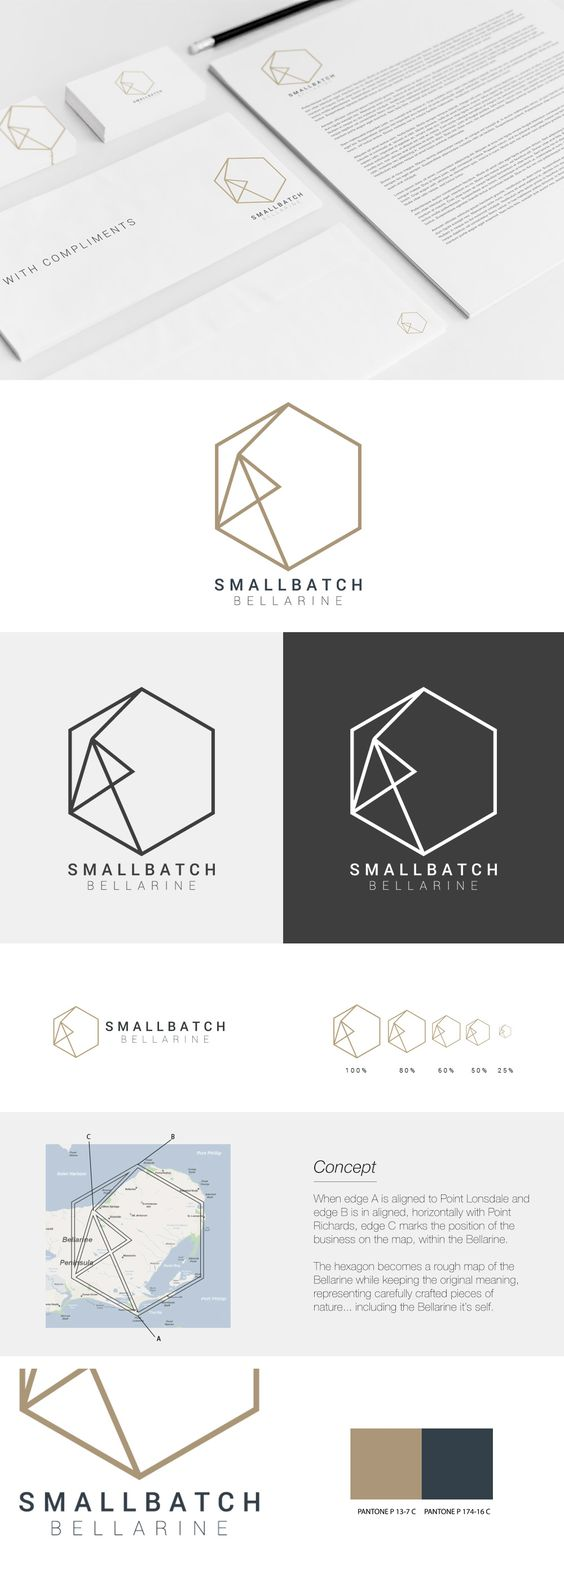 A start-up focusing on distribution of good, honest and local produce and wines. Their logo brief was specific in that the hexagon represents carefully crafted pieces of nature. To ensure the abstract nature of the brand didn't become too generic with current trends, we moved our attention to combining a unique perspective to the geometric makeup of the hexagon. We turned the shape into a scaled map pinpointing the business location and distribution area. #logo #design #hexagon